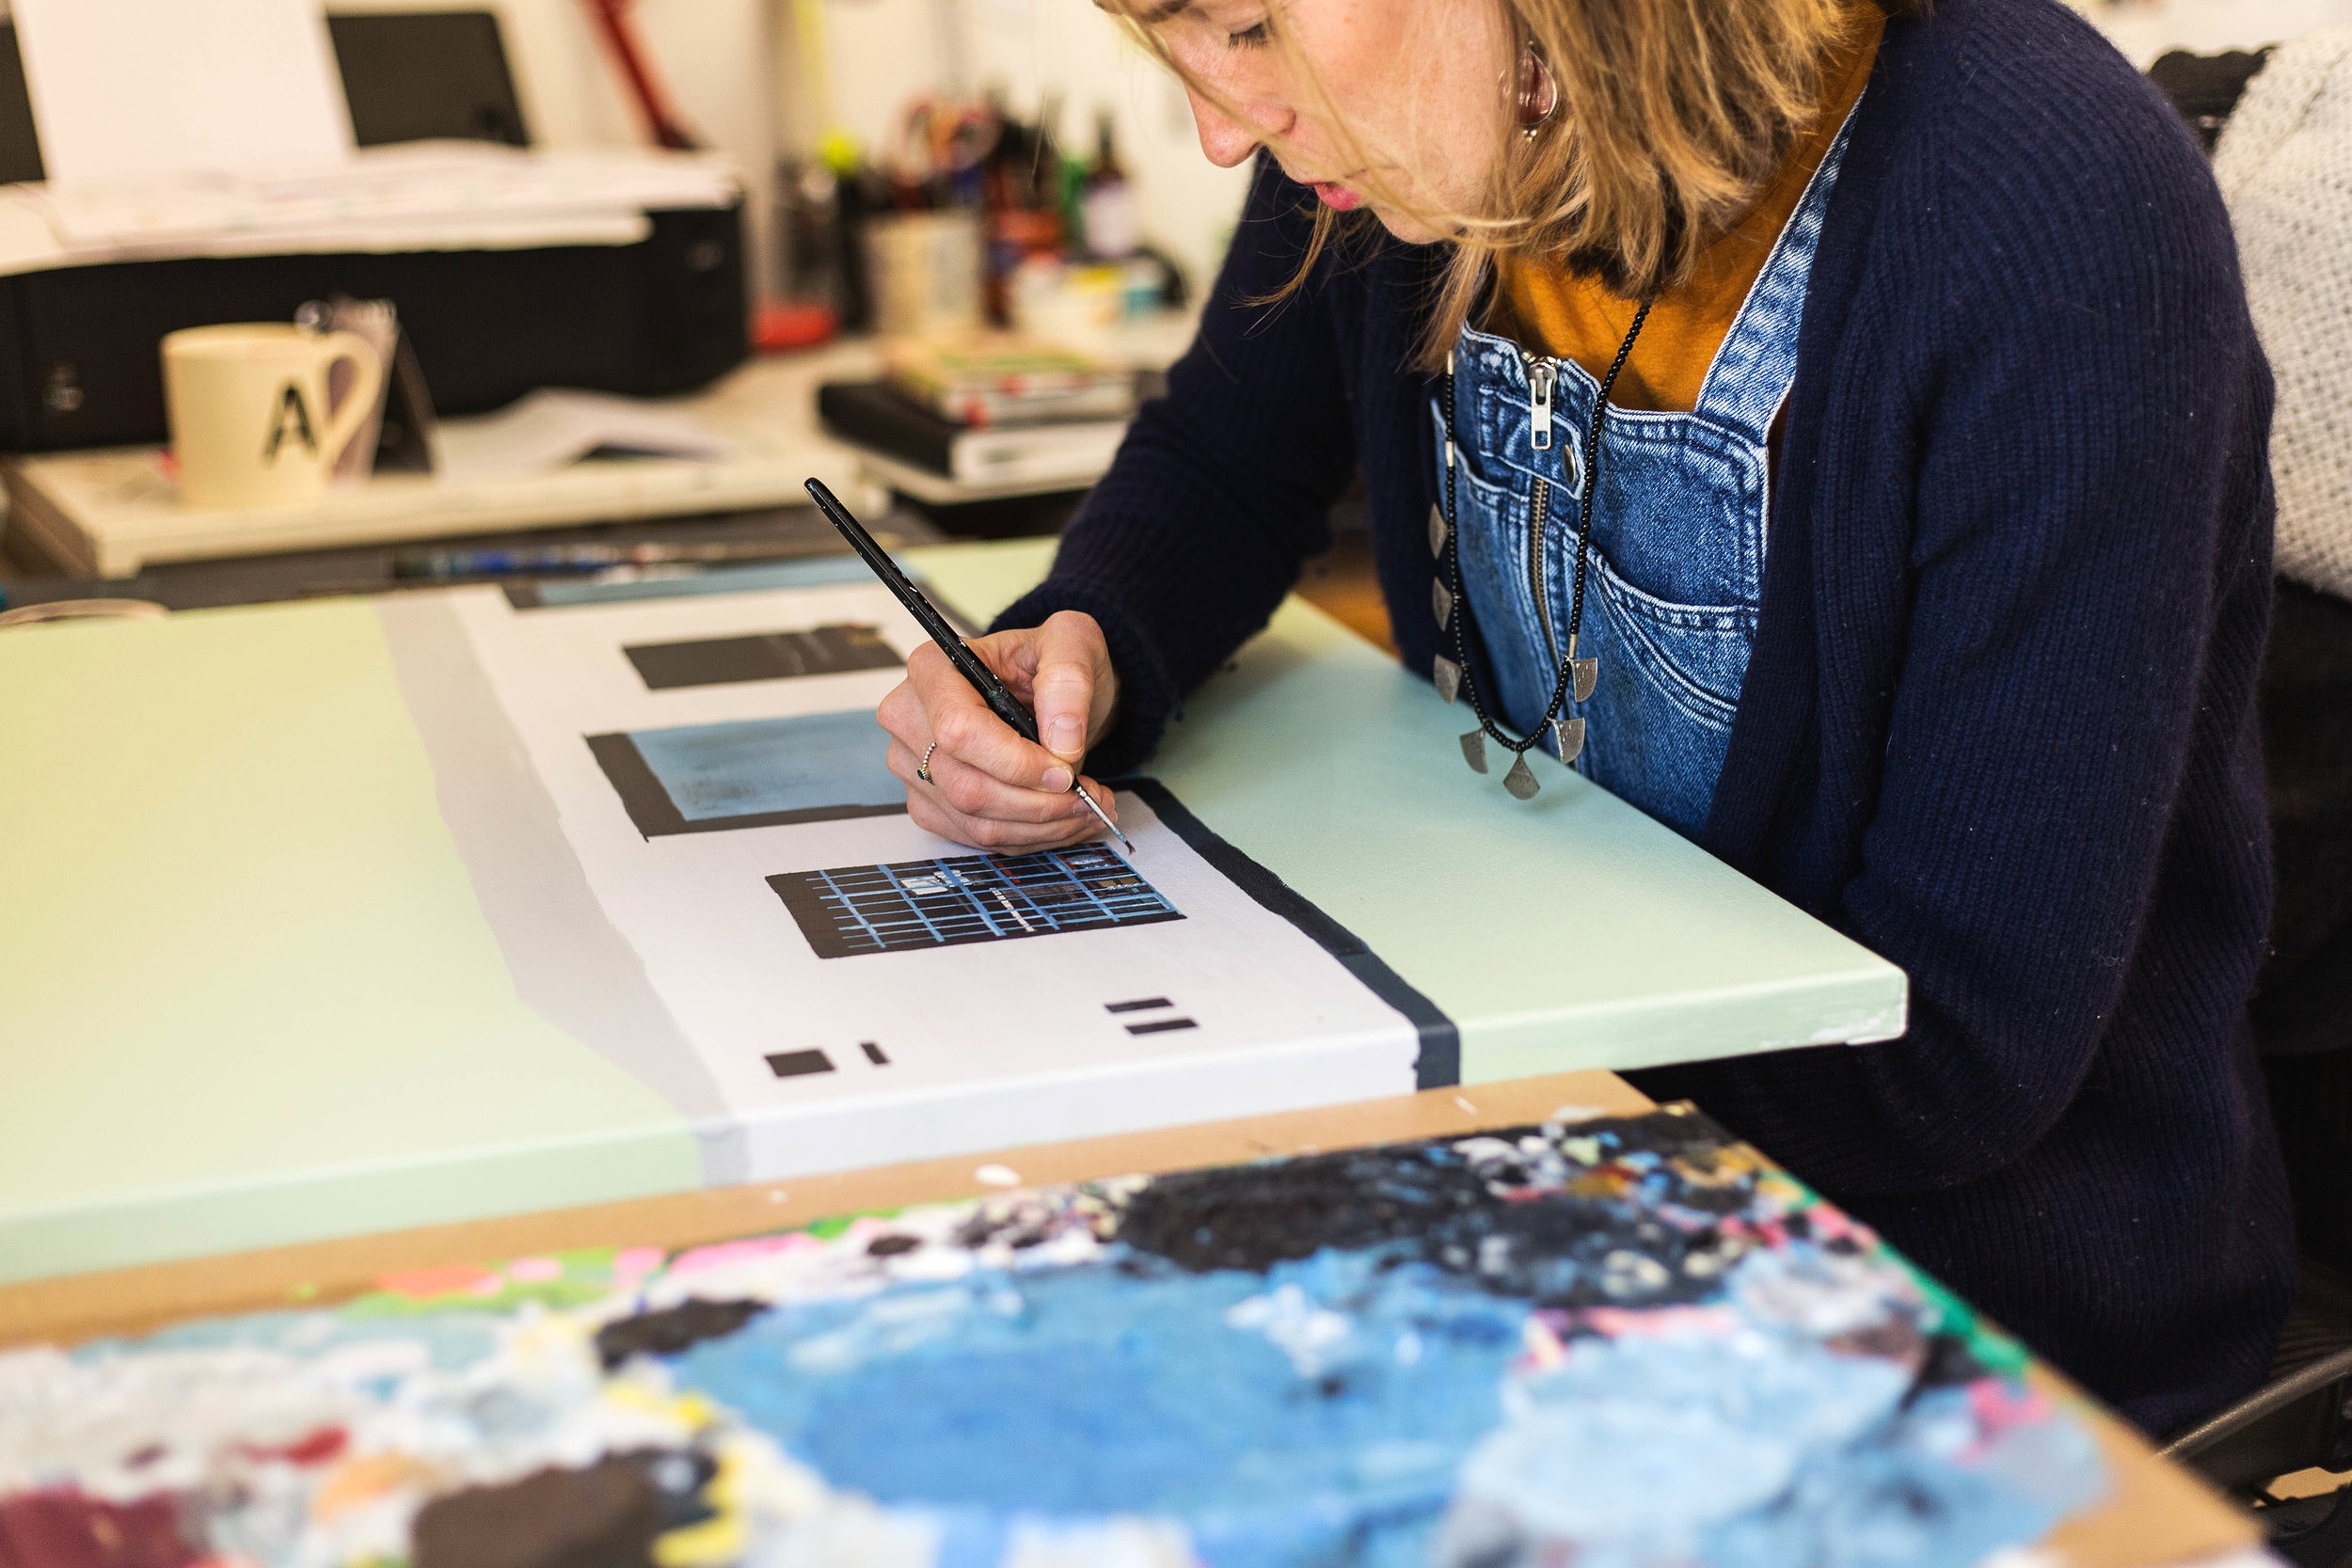 - b. 1983, ManchesterAnnie lives in Bristol and works from Jamaica Street Studio's in the creative heart of the city. She studied Textile design at Brighton University, leaving in 2005 with a 1st class BA degree. Annie has been working for over 13 years as a printed textile designer for many clients, but recently has been led to explore more deeply the environment around her and her relationship with the city; community and perspectives through painting.Annie currently works with acrylic and decorating emulsion, collage and spraypaints to convey objects and places as she believes them to be. Colour, shape and texture are built to create scenes on canvas.